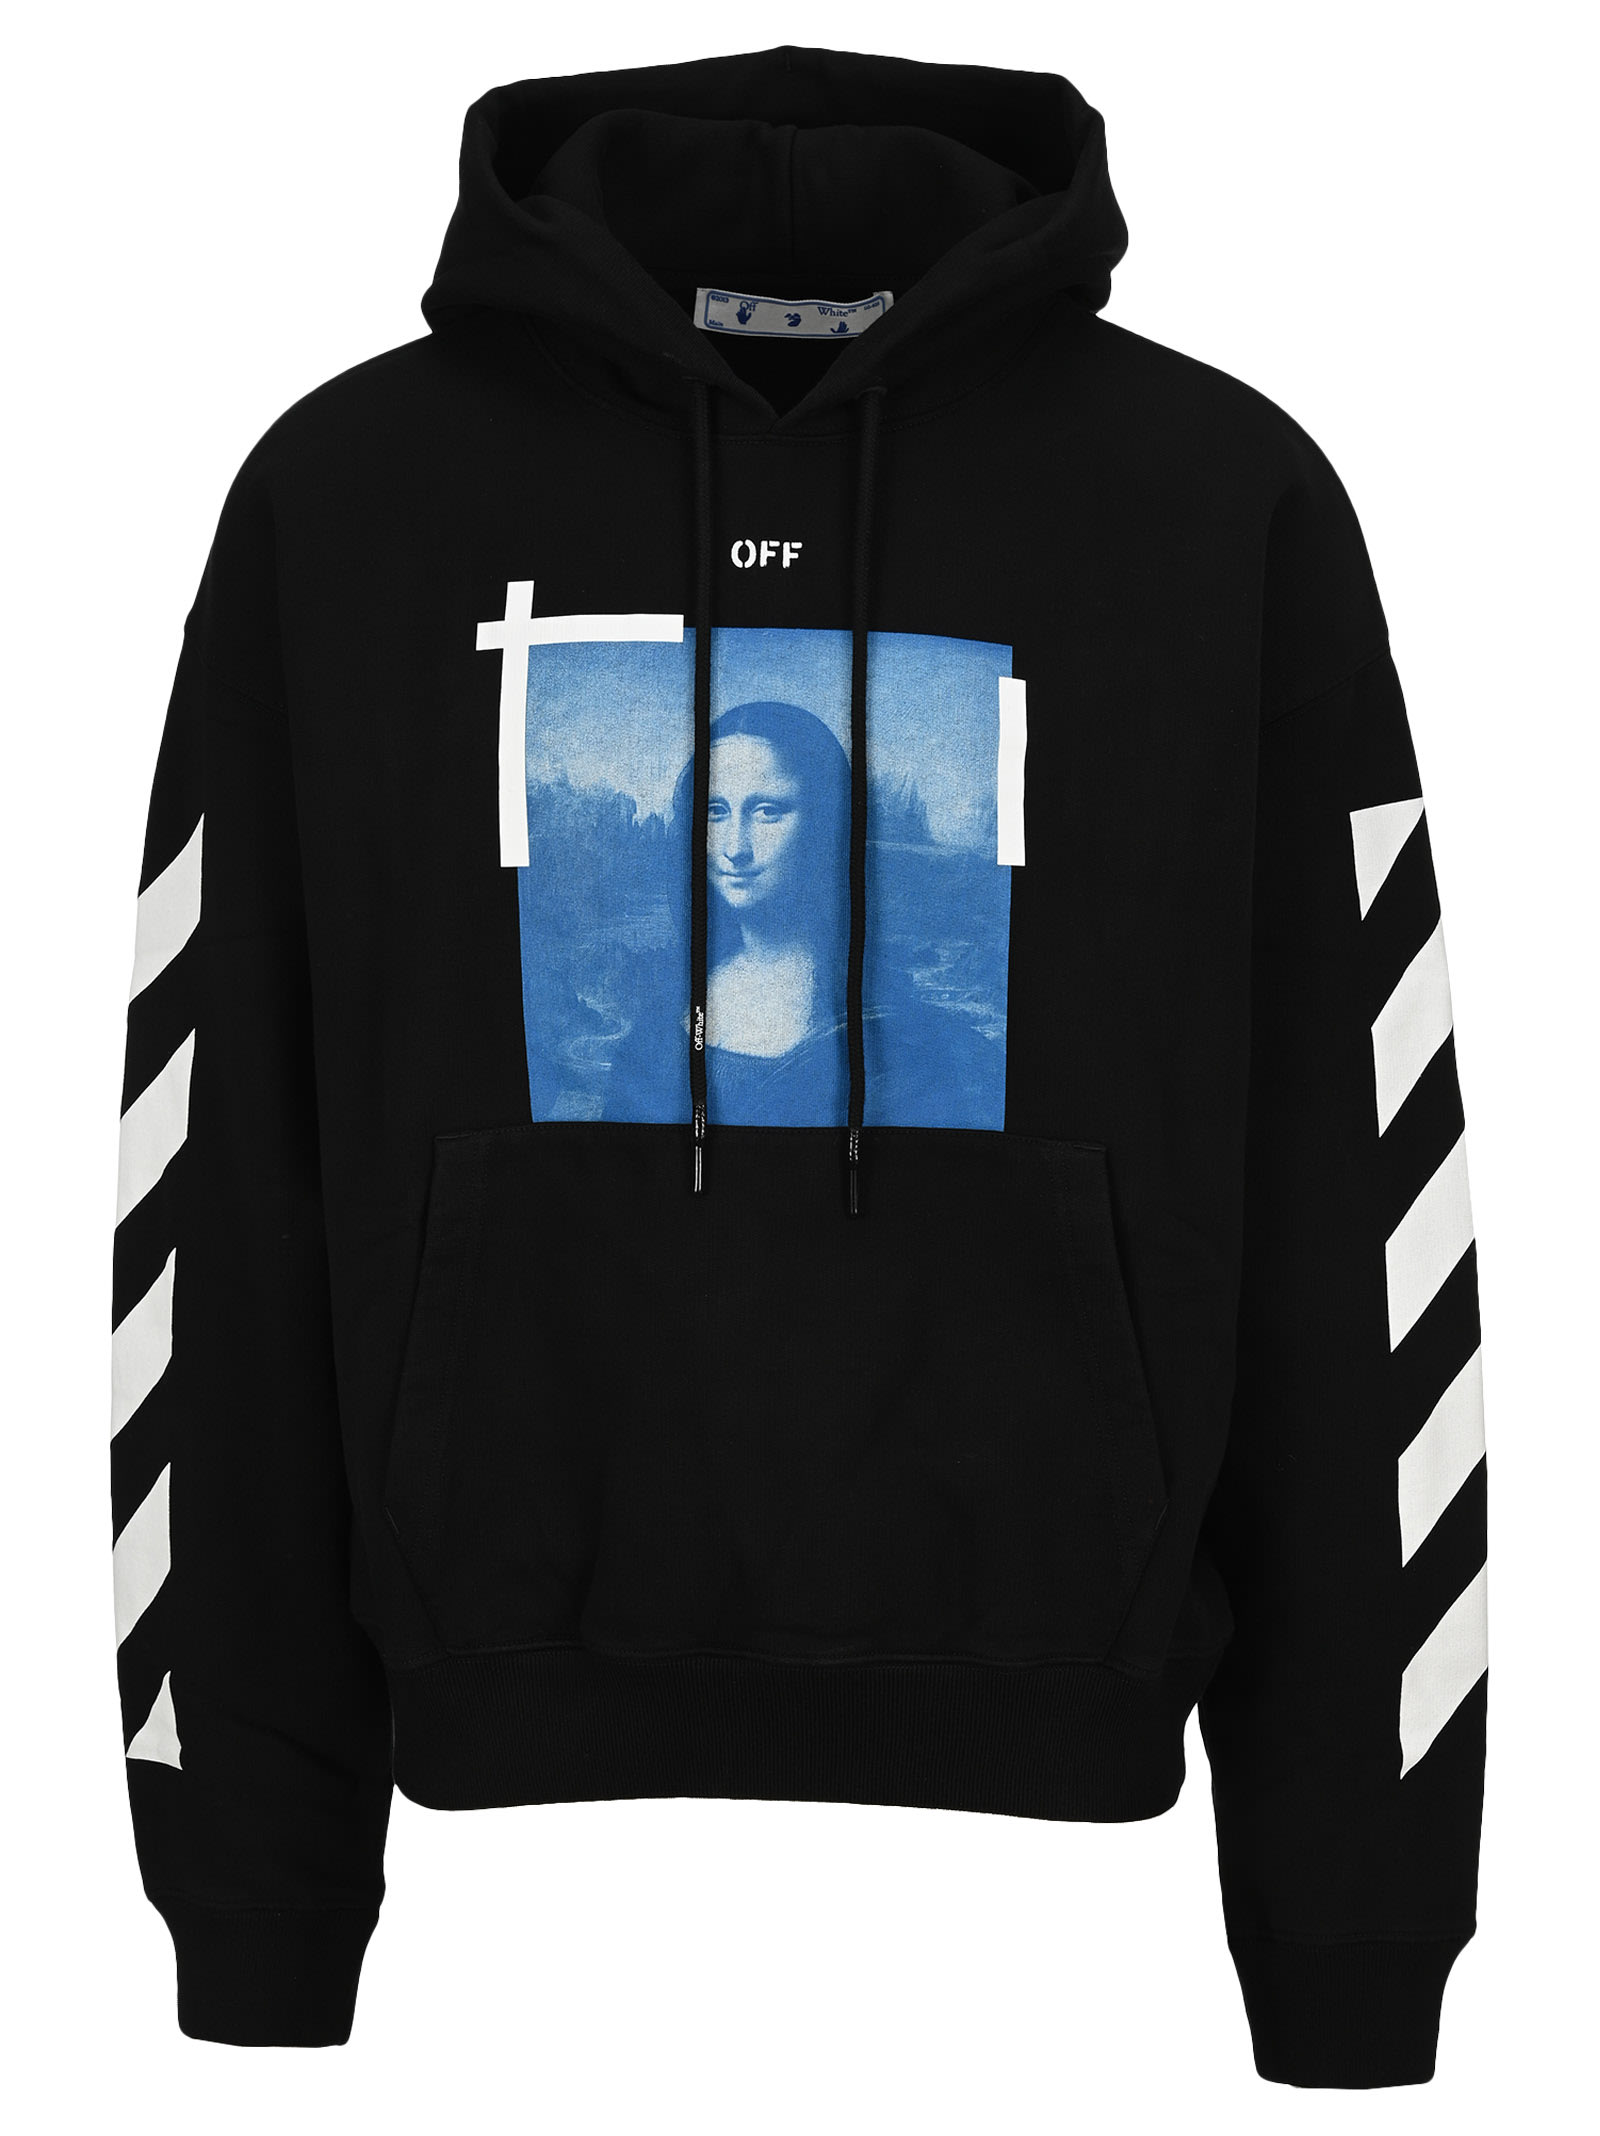 Off-White Cottons OFF WHITE MONA LISA GRAPHIC PRINT HOODIE